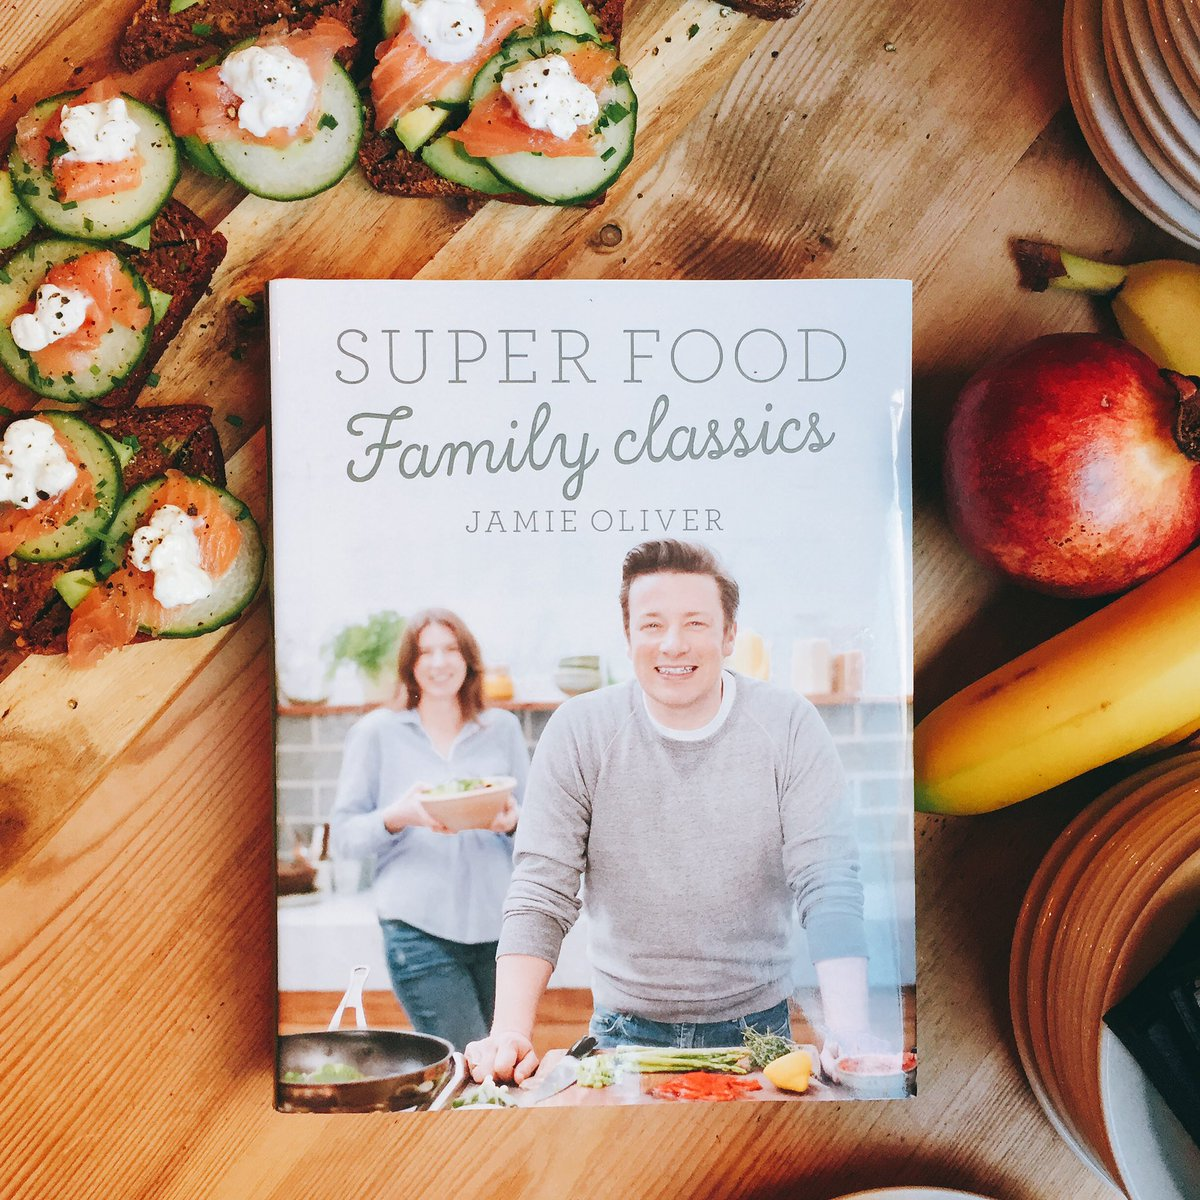 RT @jamiesfoodfdn: Lovely breakfast to celebrate @jamieoliver 's new book. Thank you to @jamiesfifteen for hosting us #FamilySuperFood http…